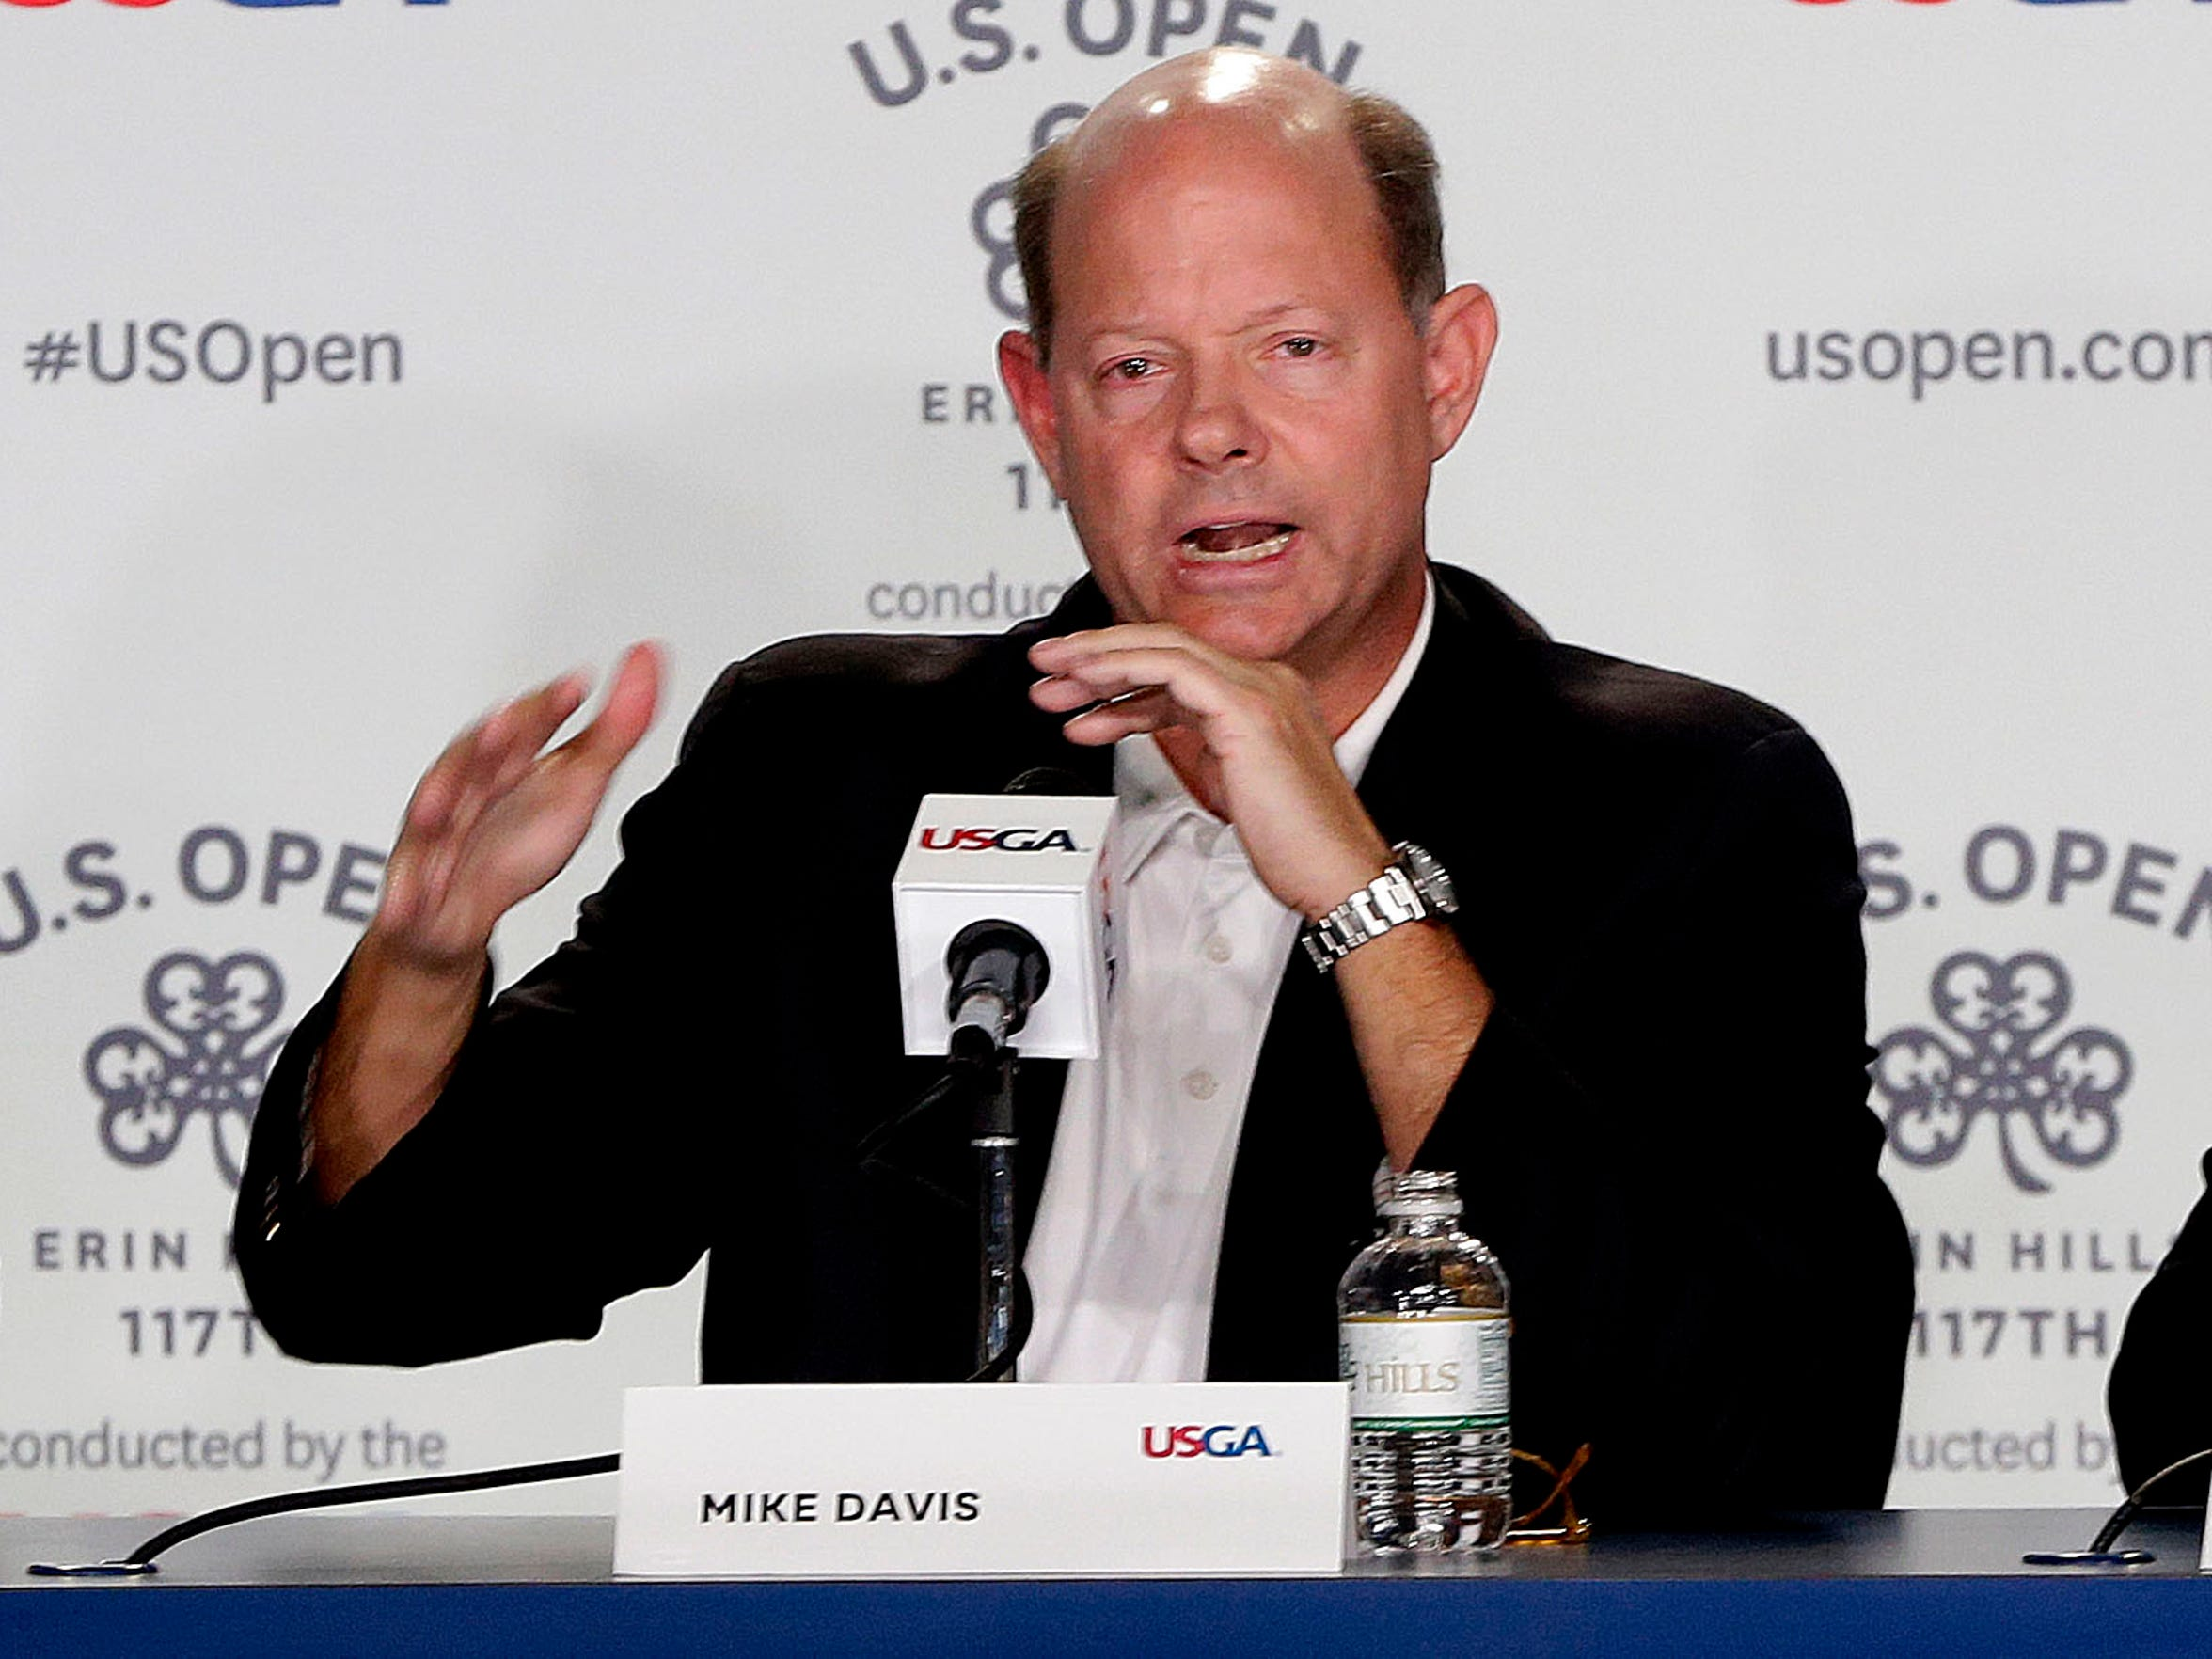 """""""For everybody here, they're not only the owners, the custodians, the keepers of this, but they have put their heart and soul into it,"""" USGA executive director Mike Davis said at a recent media day for the U.S. Open at Erin Hills."""